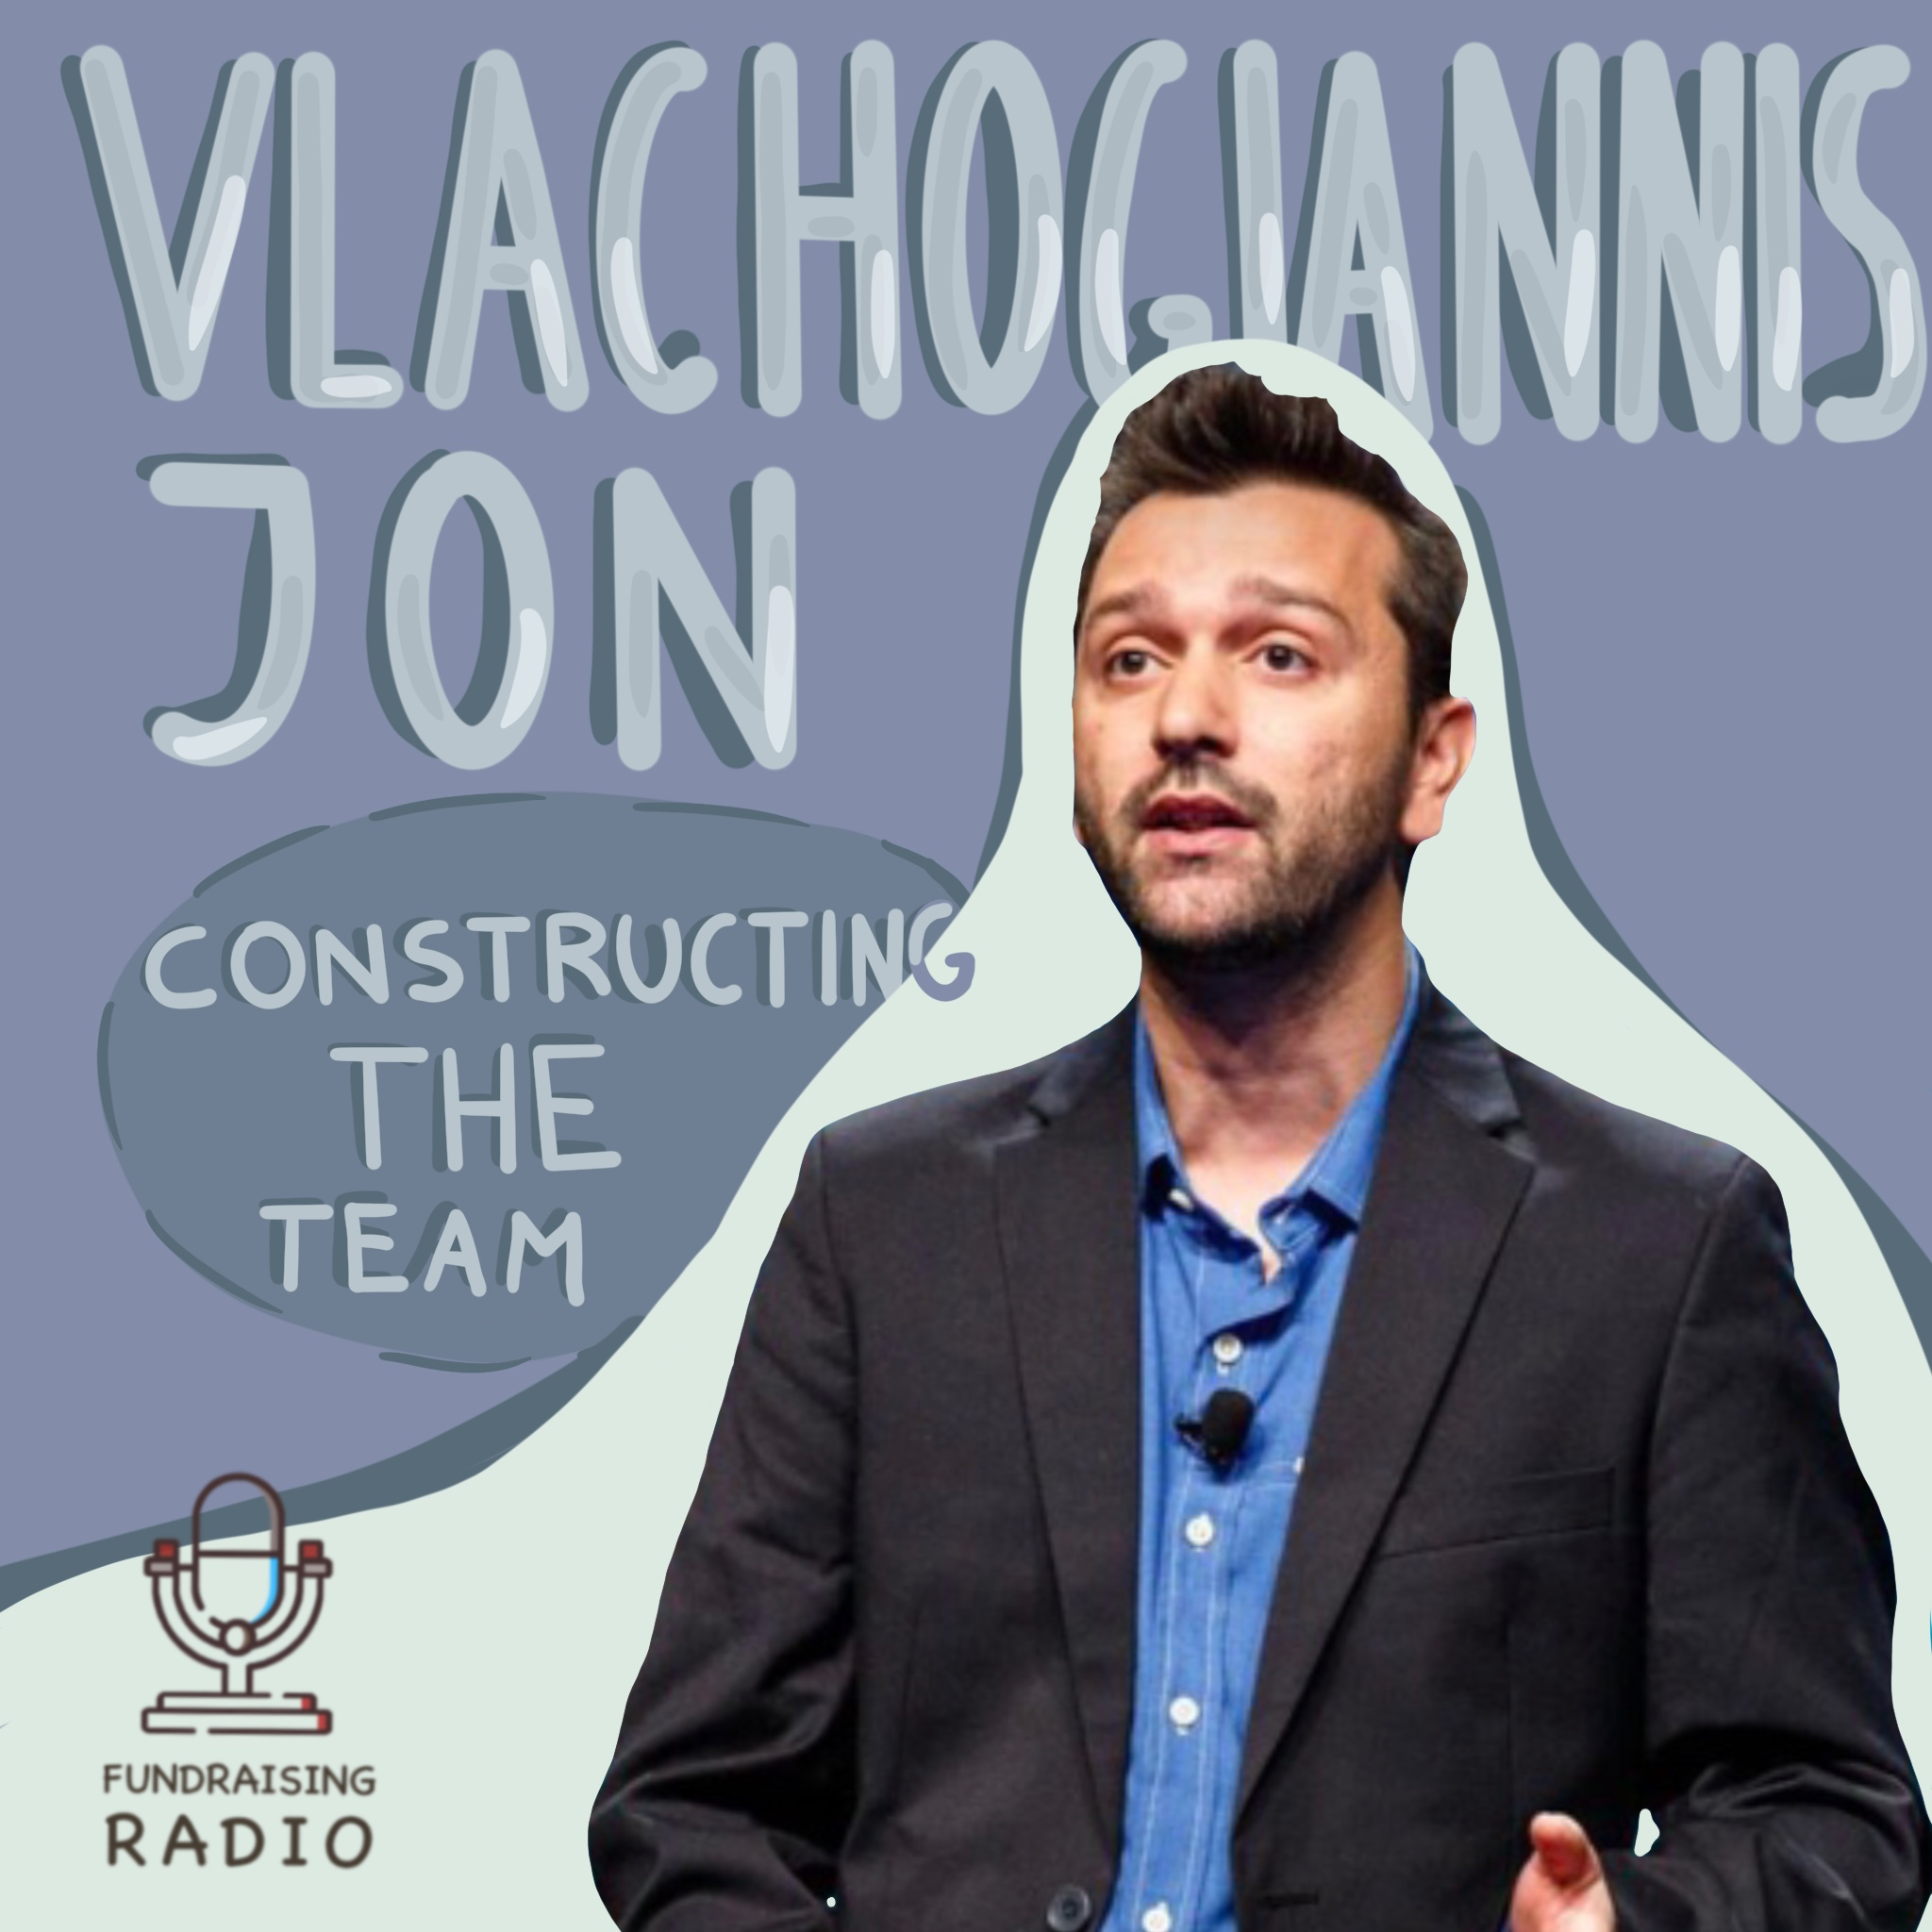 Constructing MVP and a team - Jon Vlachogiannis about creating success.